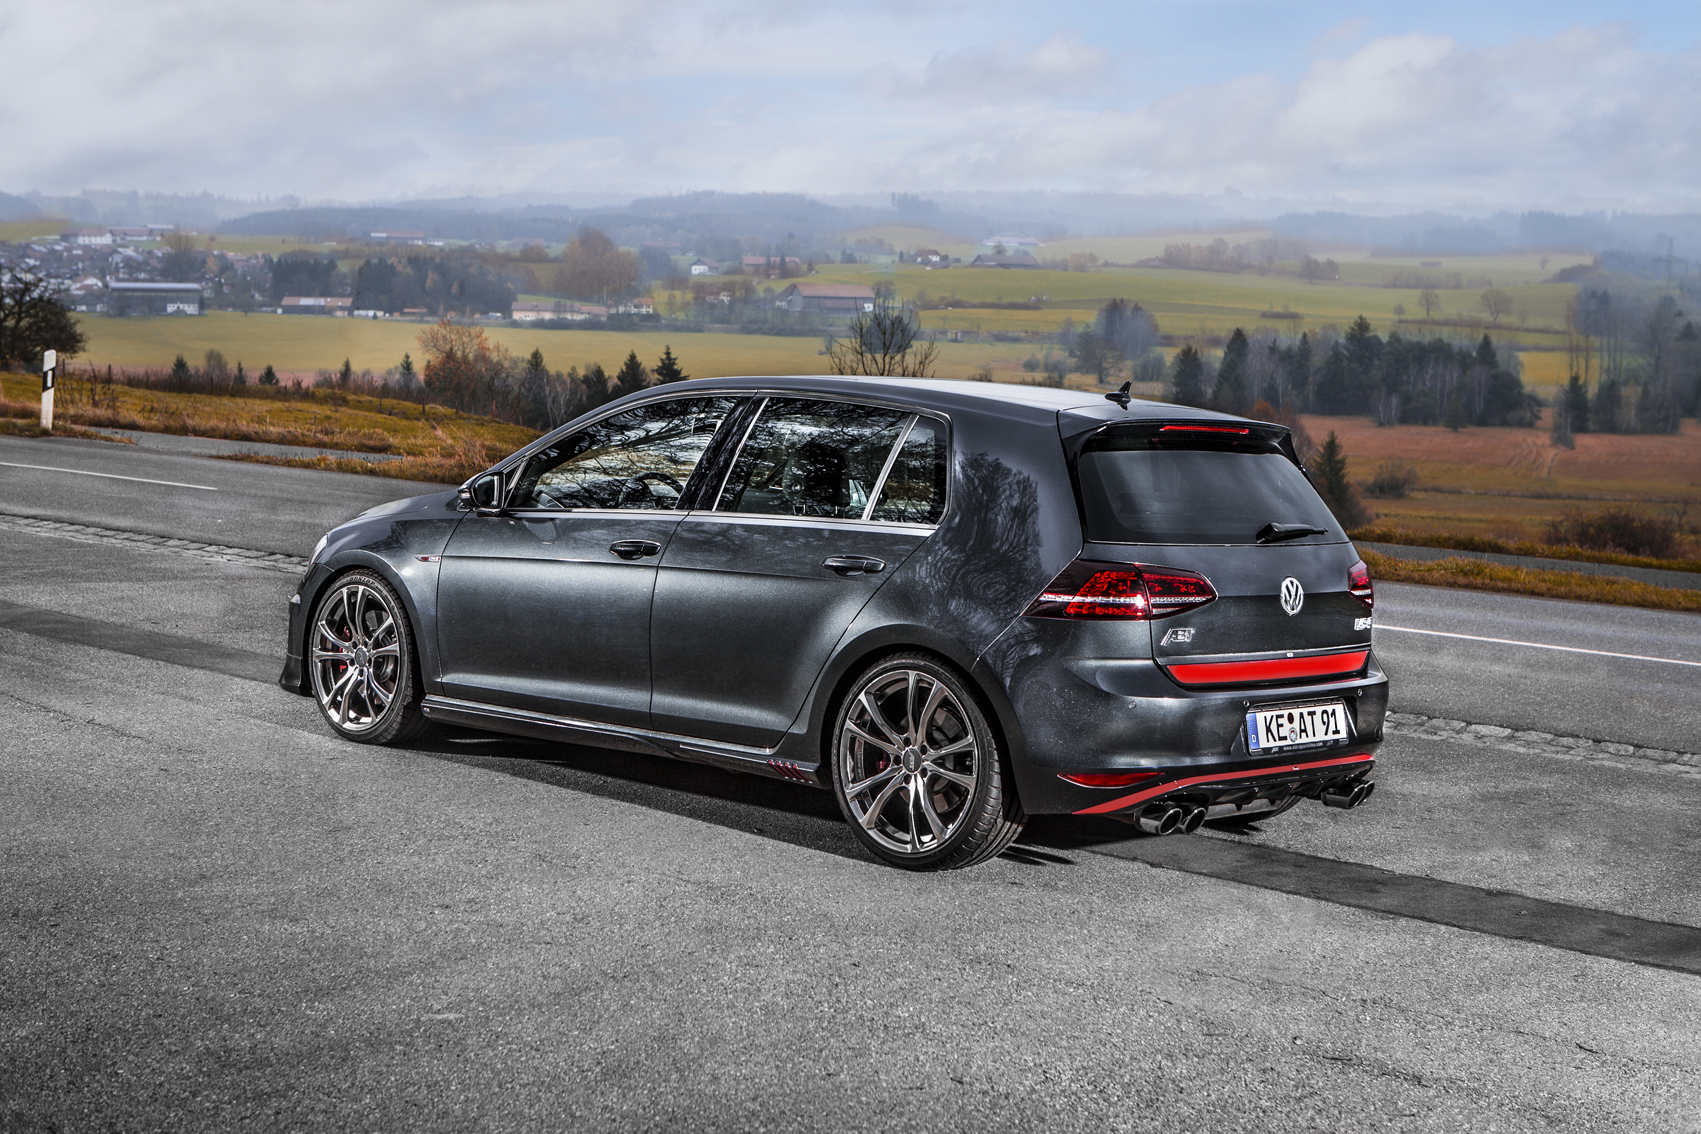 The Abt Golf Gti Is A Volkswagen Tuner S Perfect Car The Drive